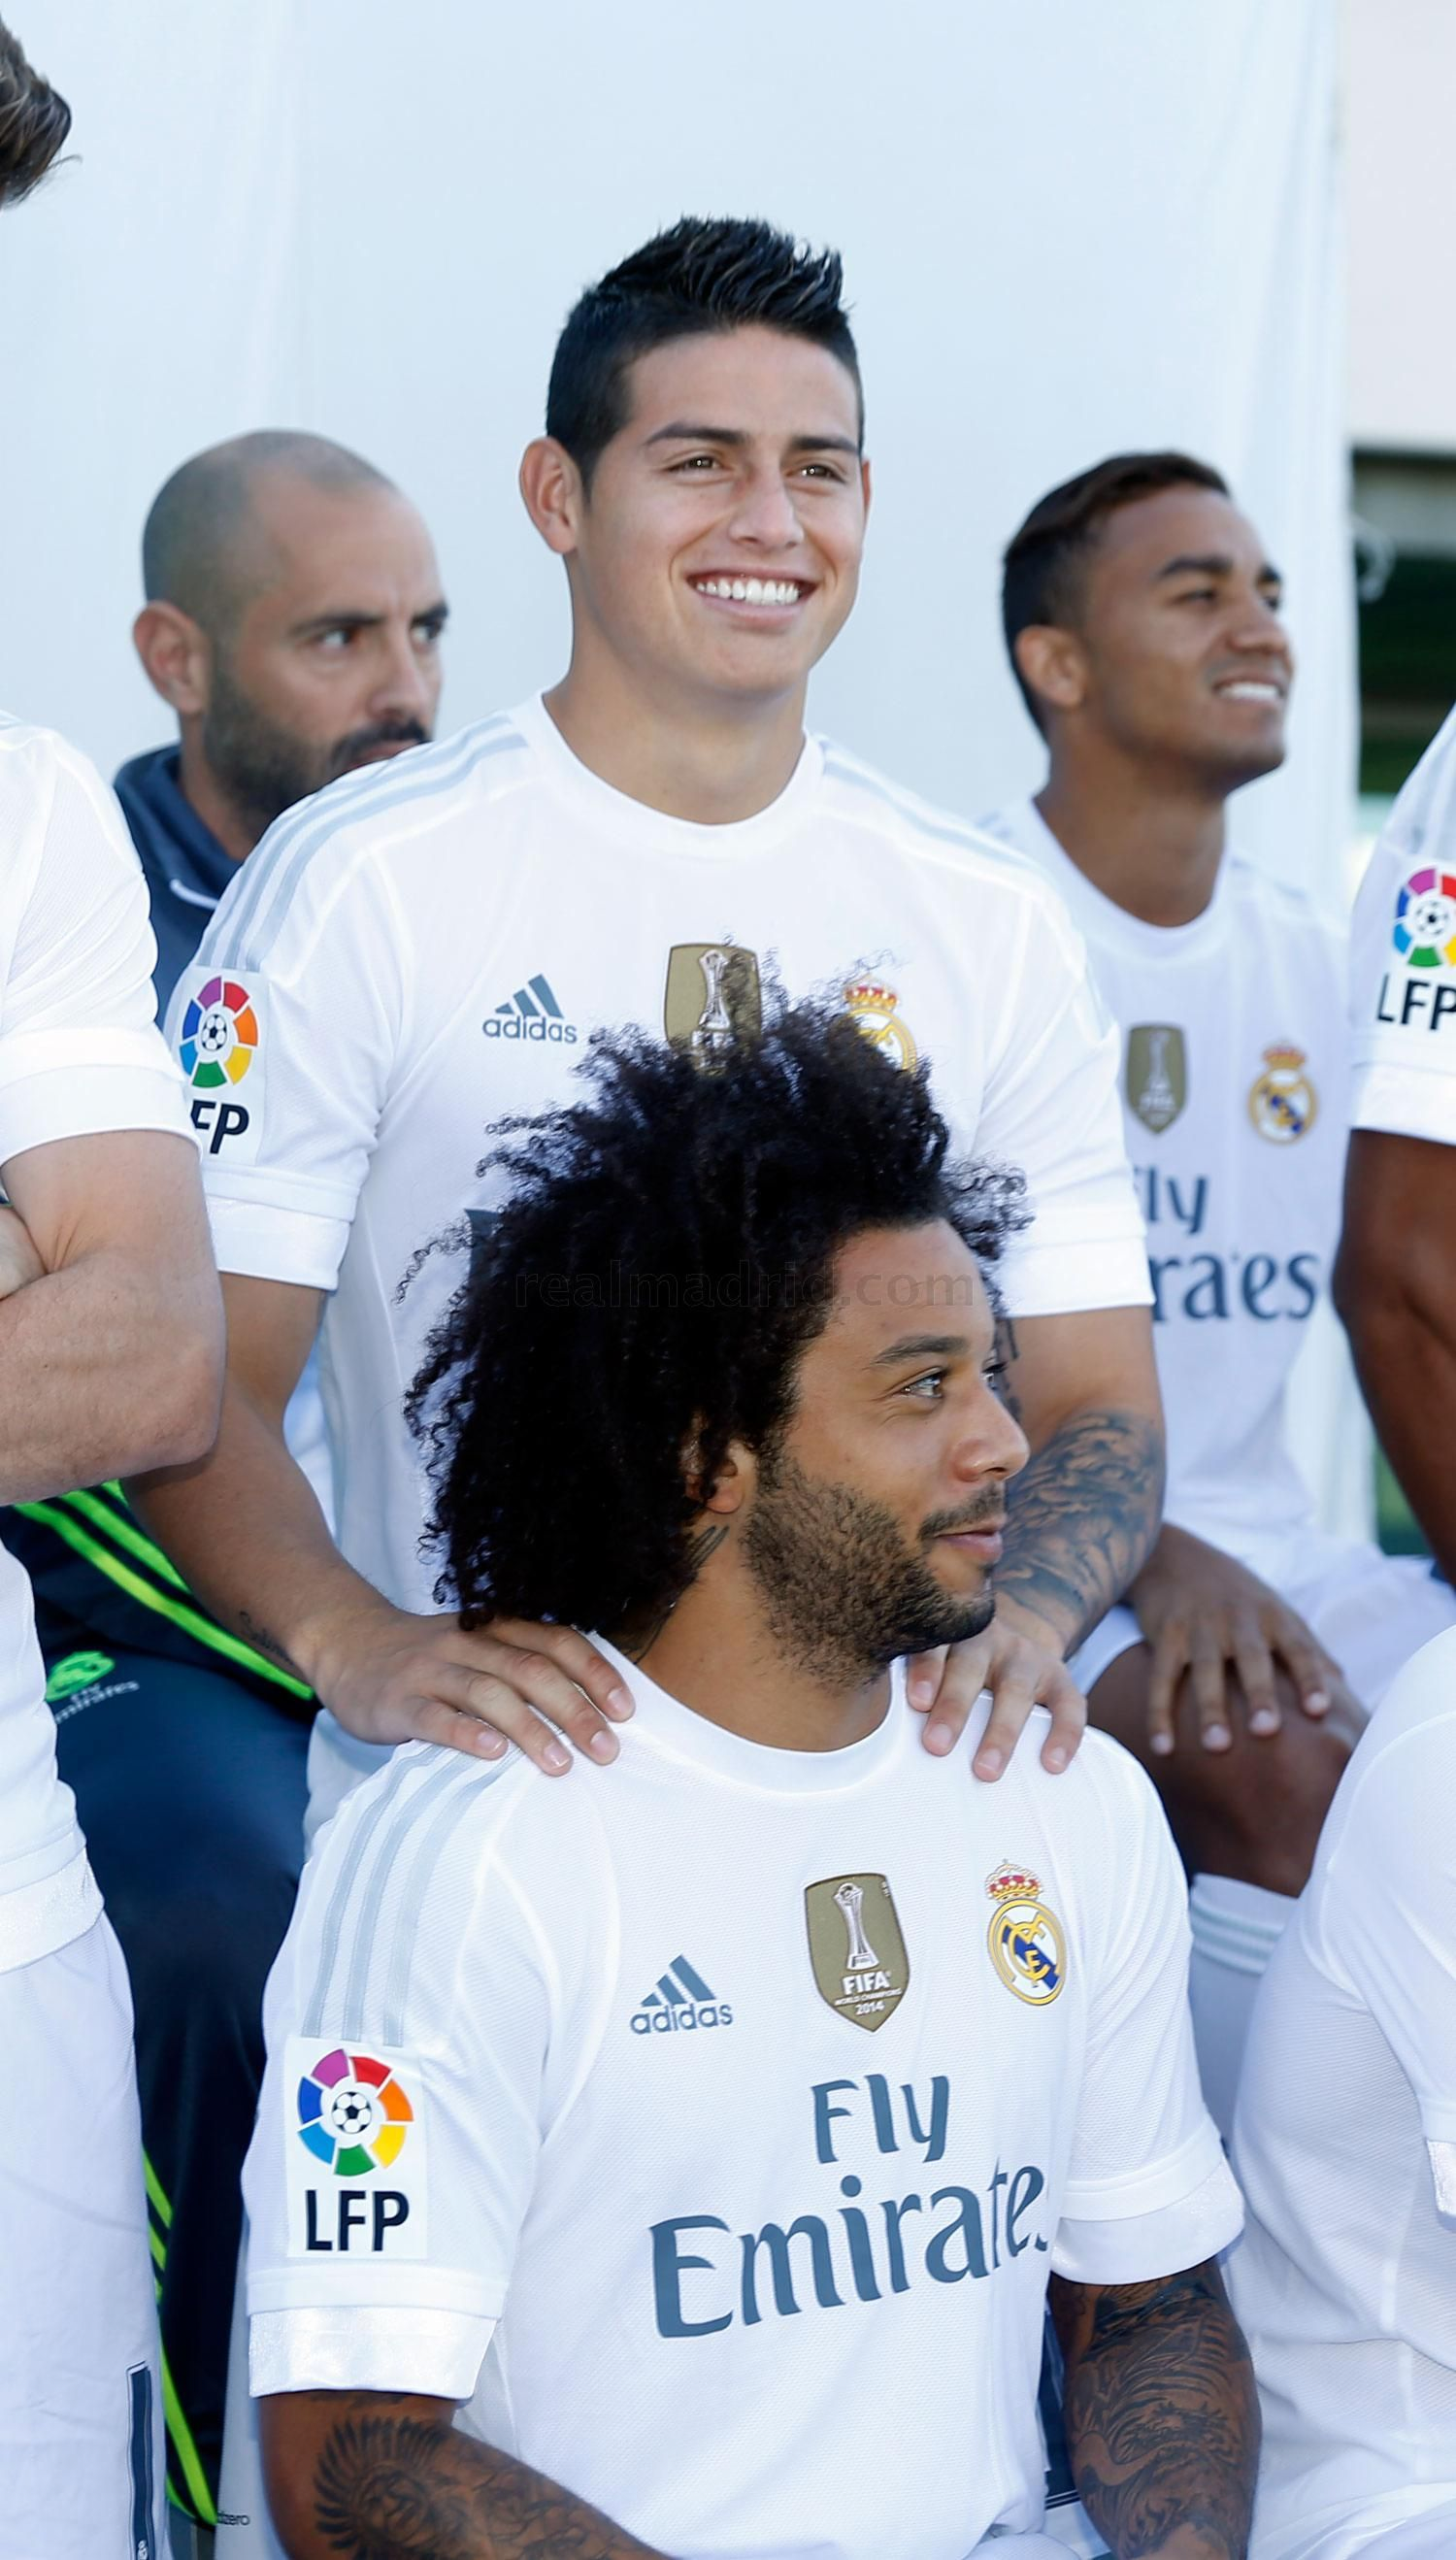 A look at Real Madrid's official photograph for the 2015/16 season | Real Madrid CF. James and Marcelo I foreground. 21.9.15